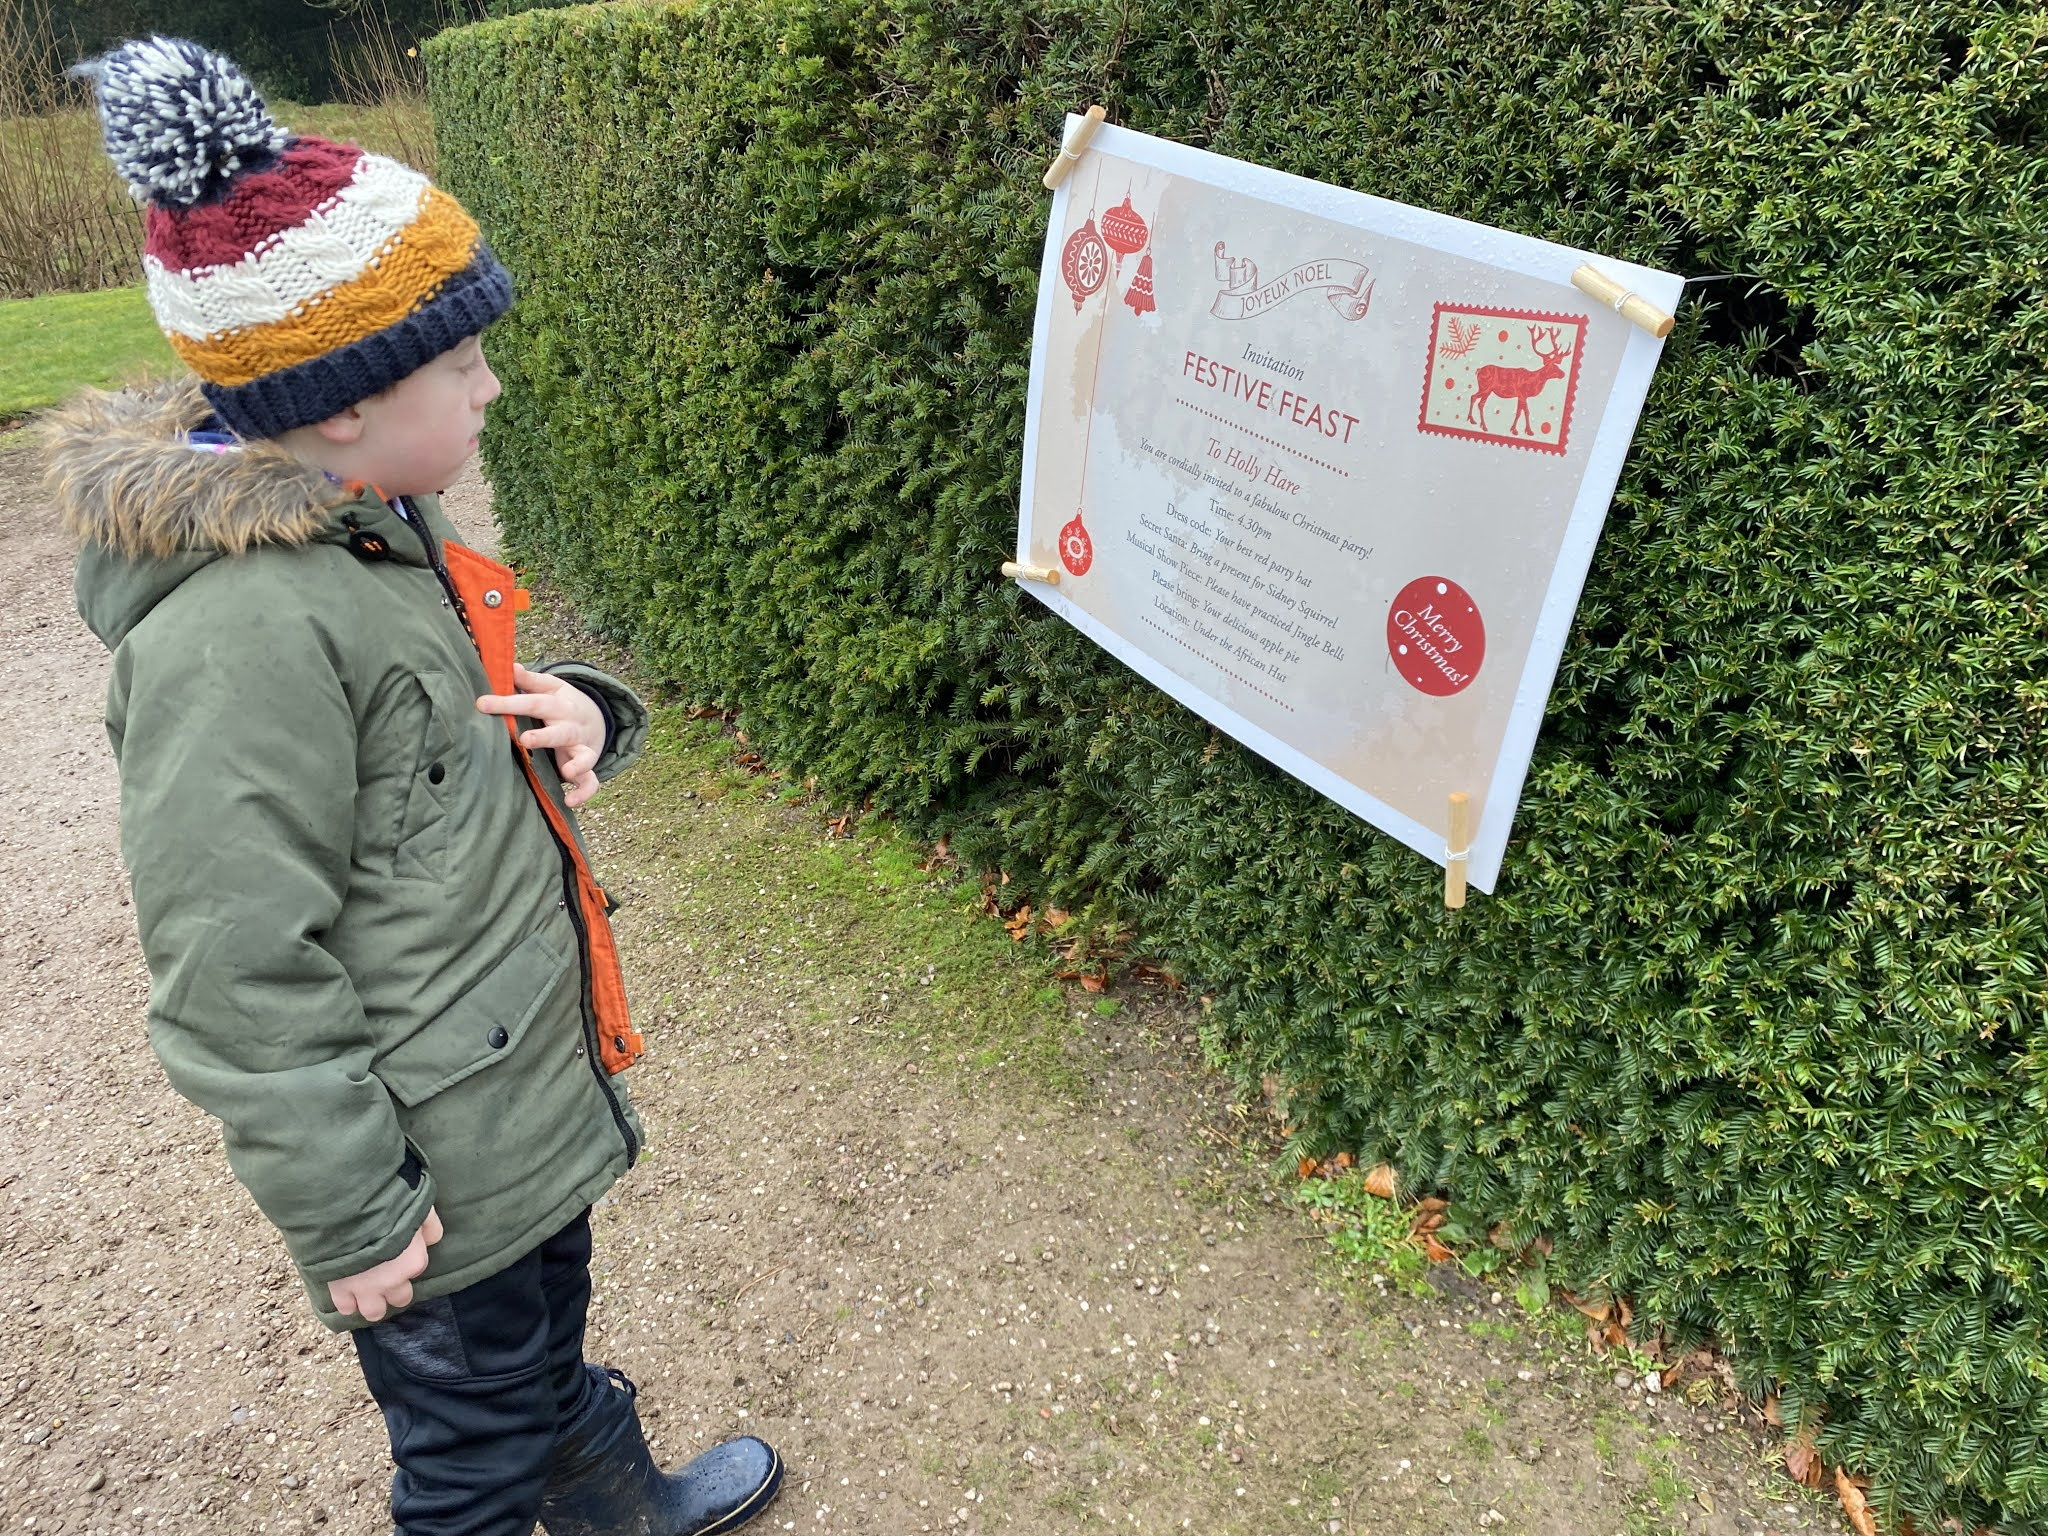 Boy looking at a sign